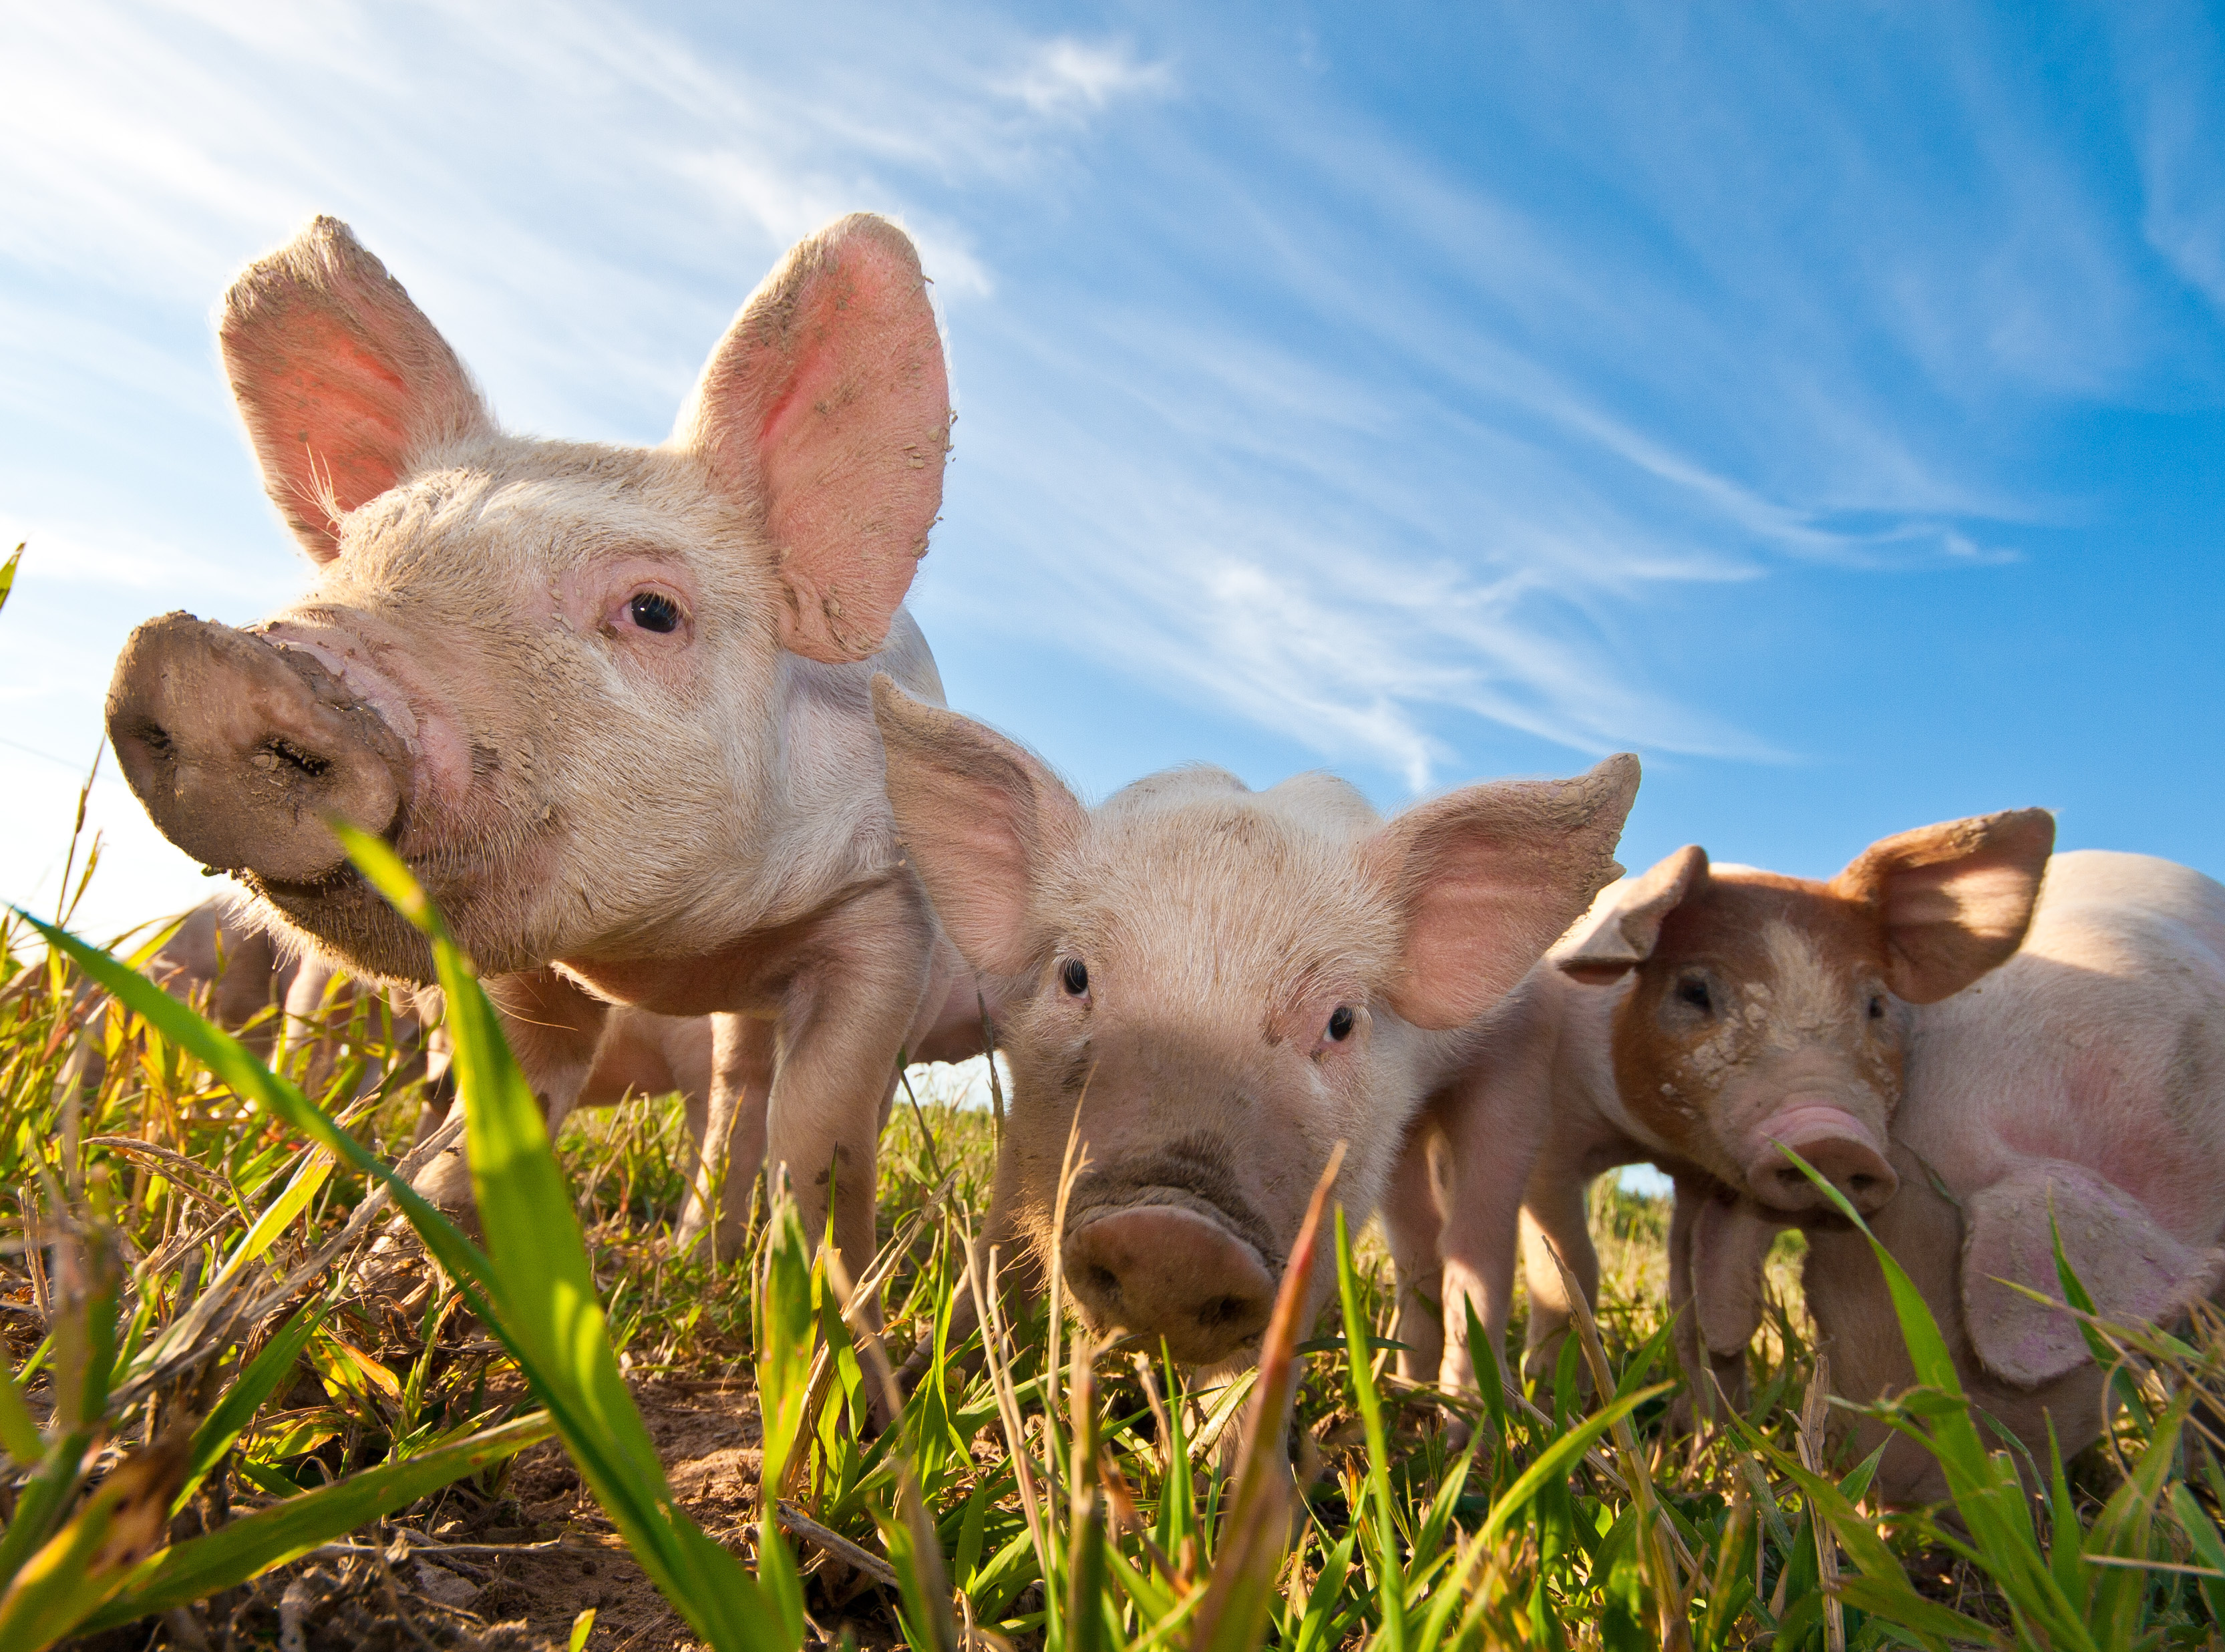 Pigs use of language in animal farm